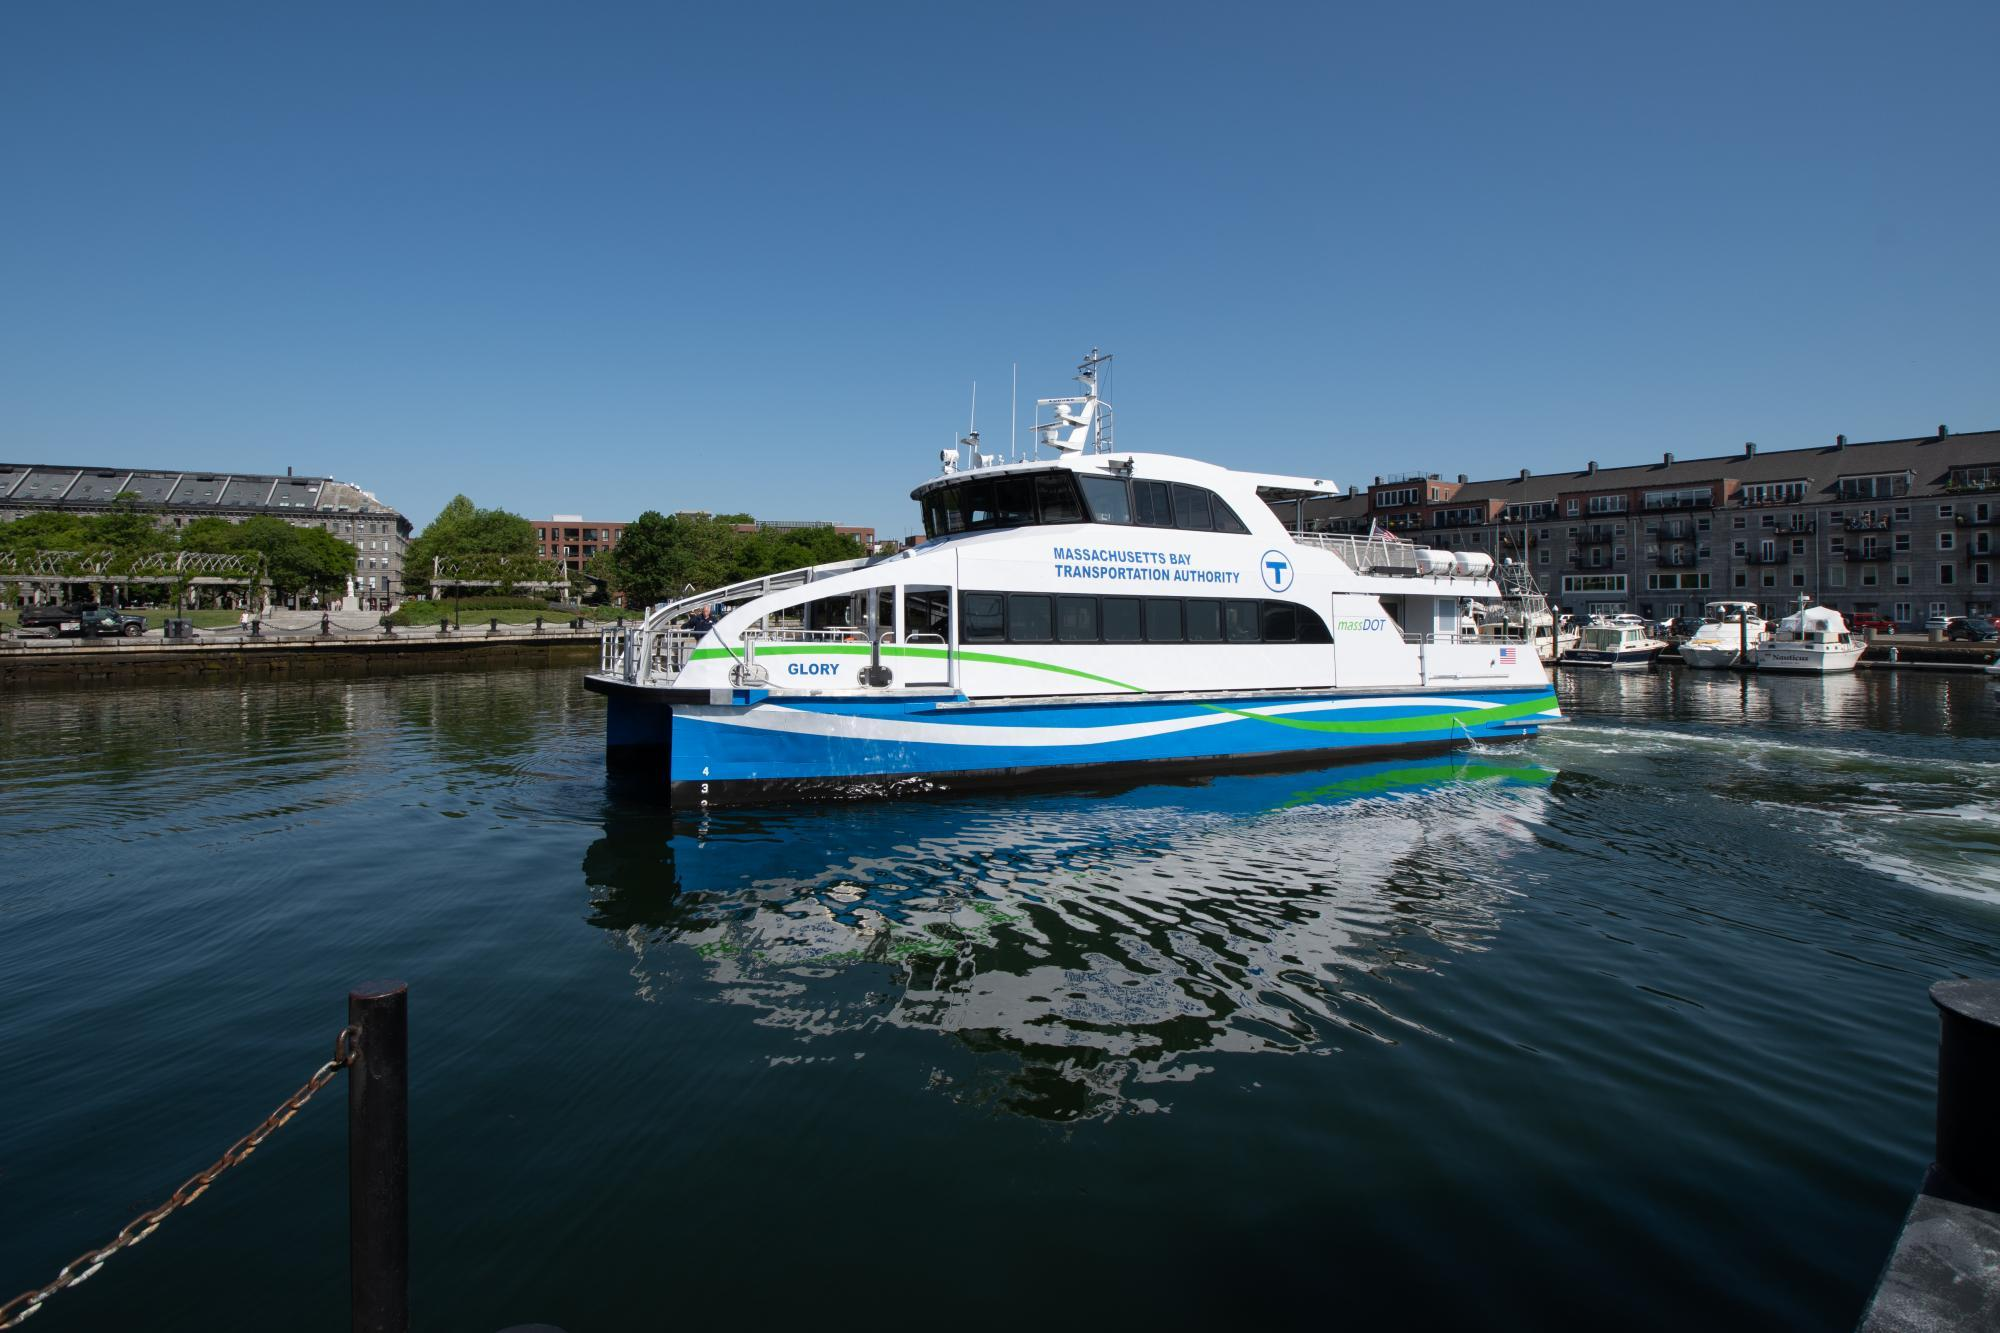 mbta ferry at long wharf